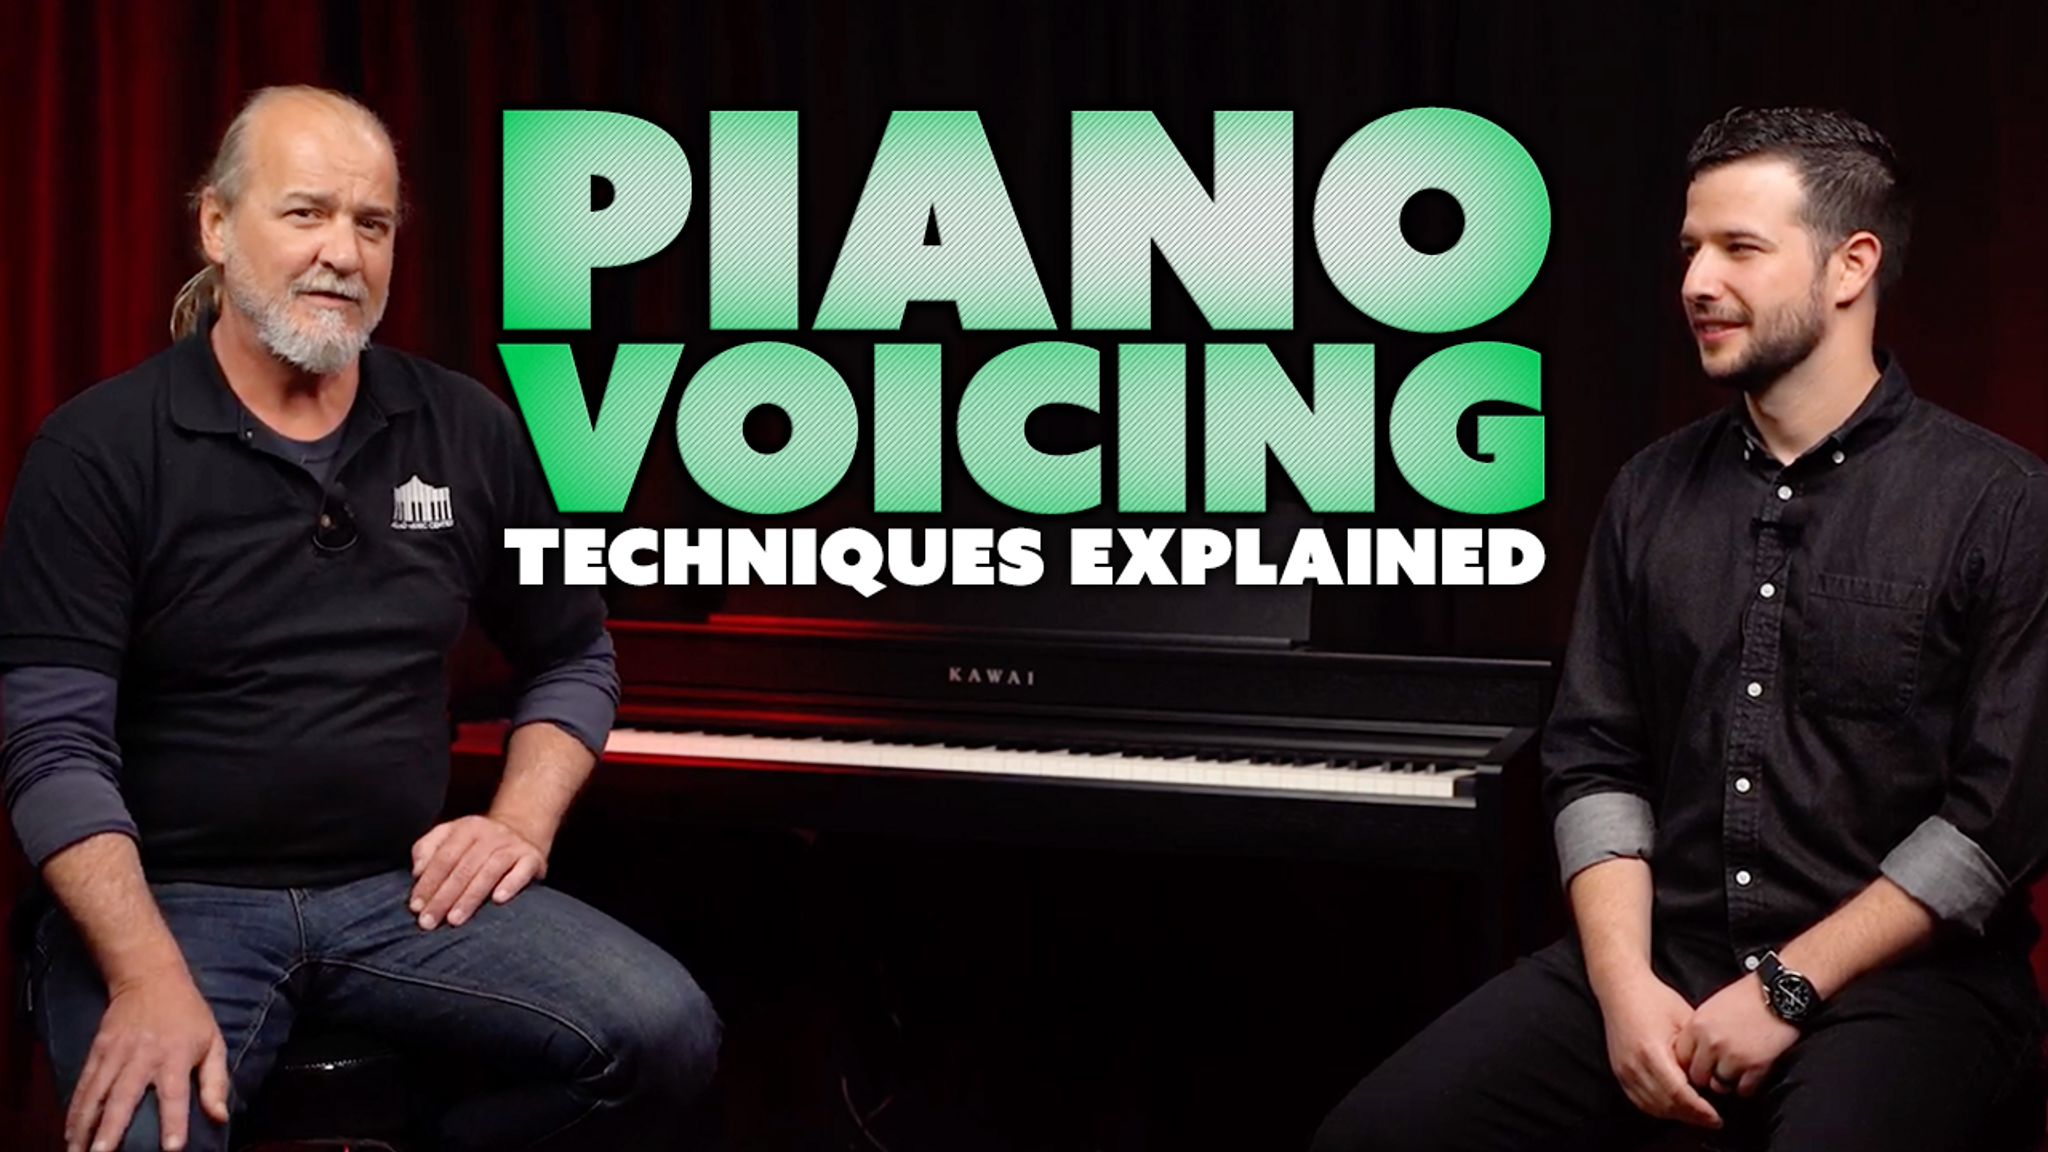 Piano Voicing (Tone Regulation) Explained | Adjusting The Sound Of Your Piano